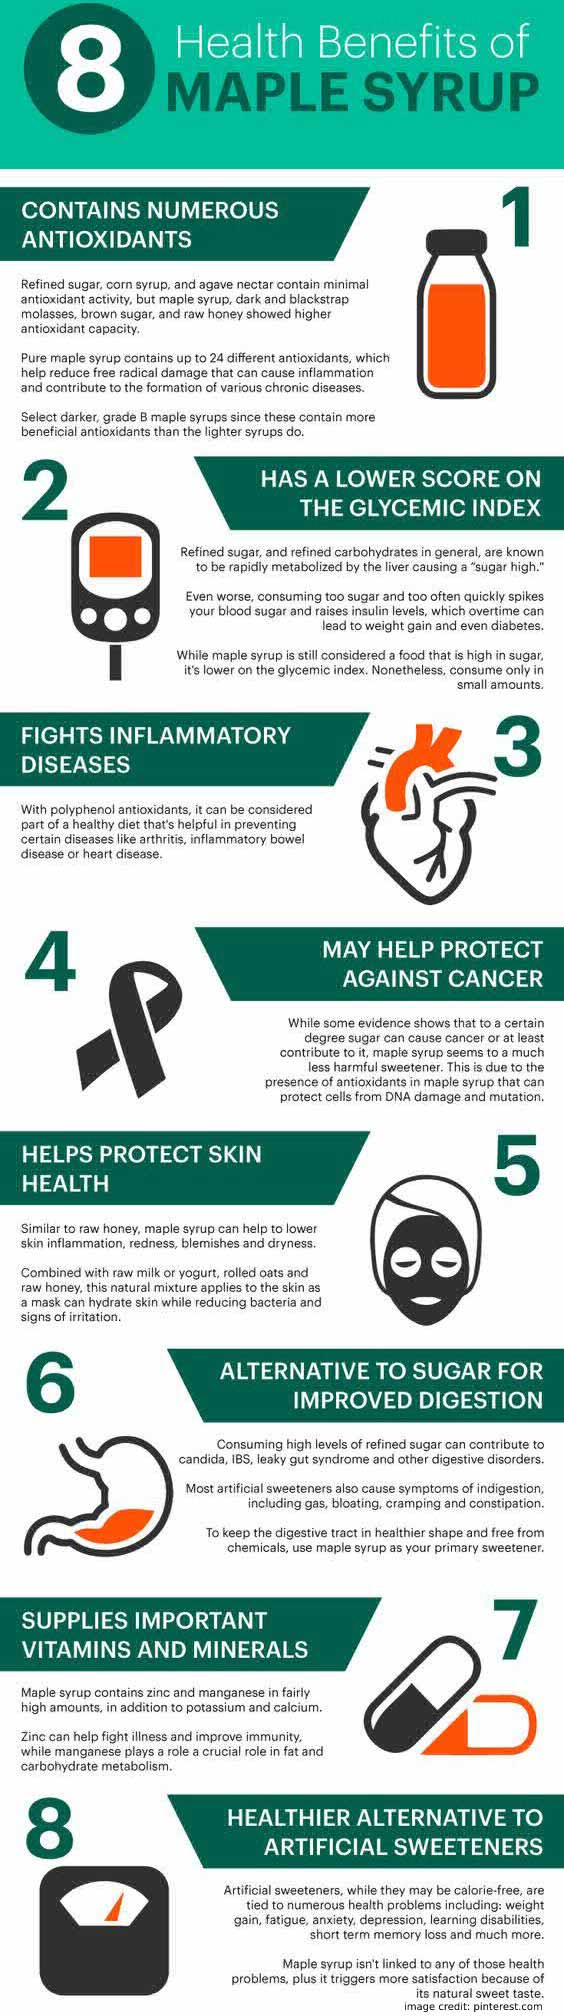 Fights Inflammatory Diseases